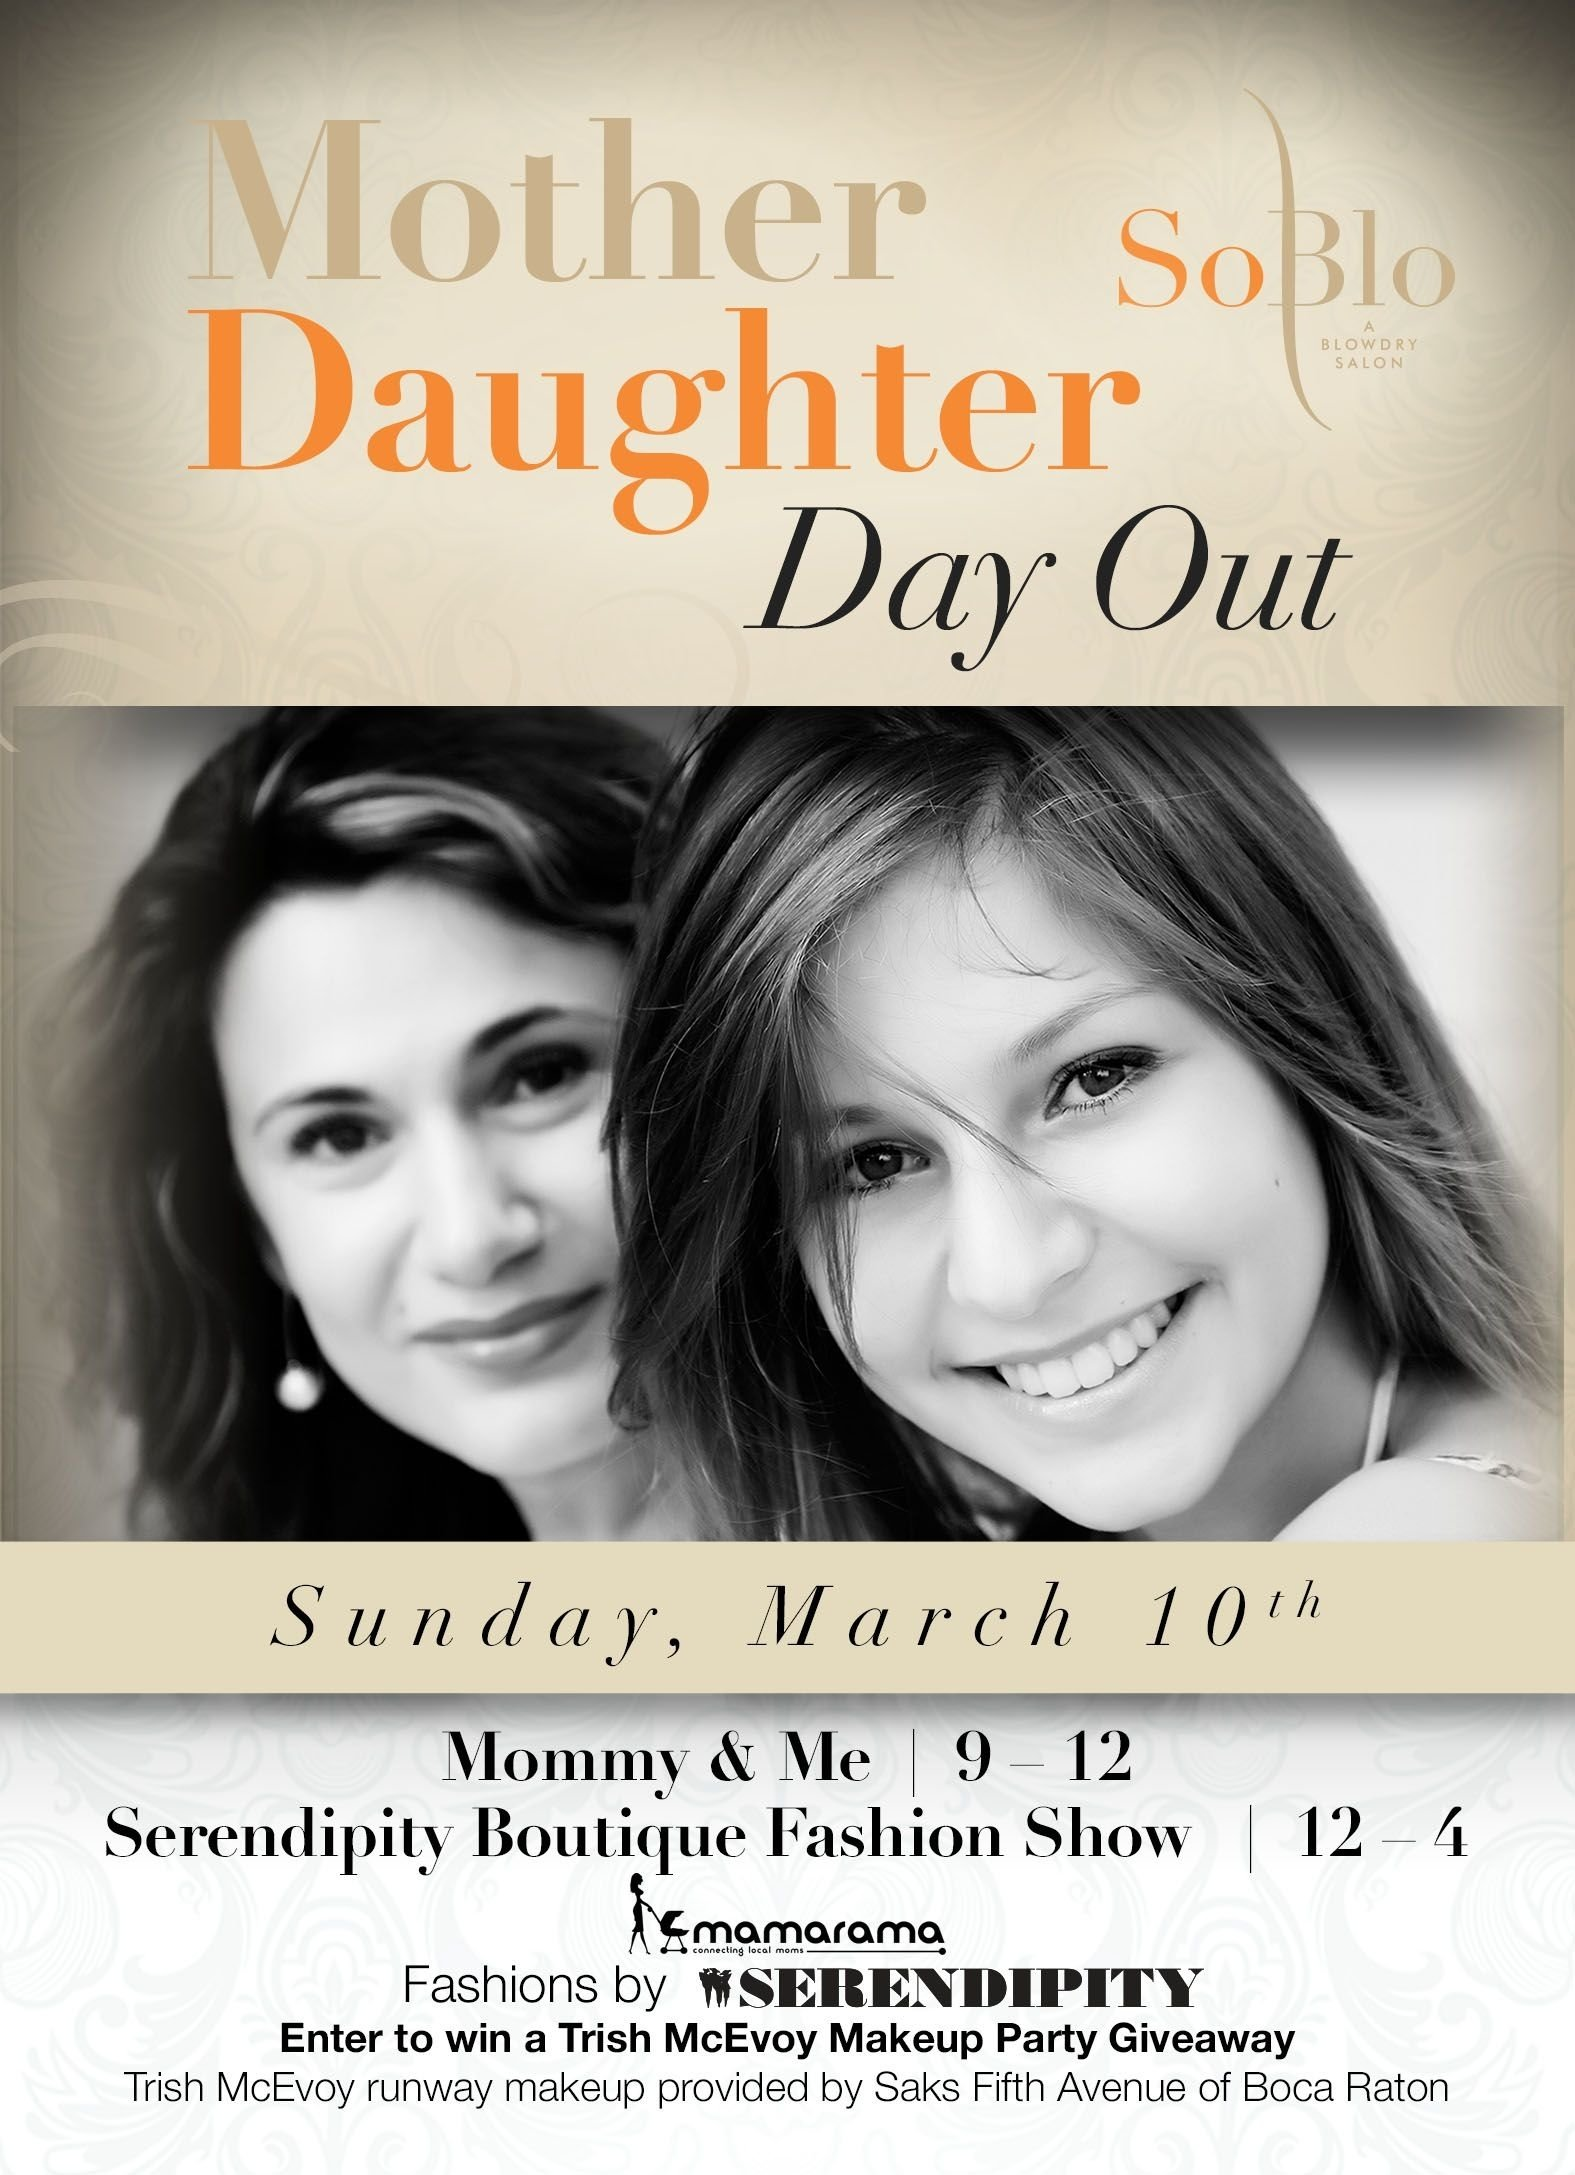 10 Stylish Mother Daughter Day Out Ideas mother daughter day out soblo boca raton gab events 360 2020